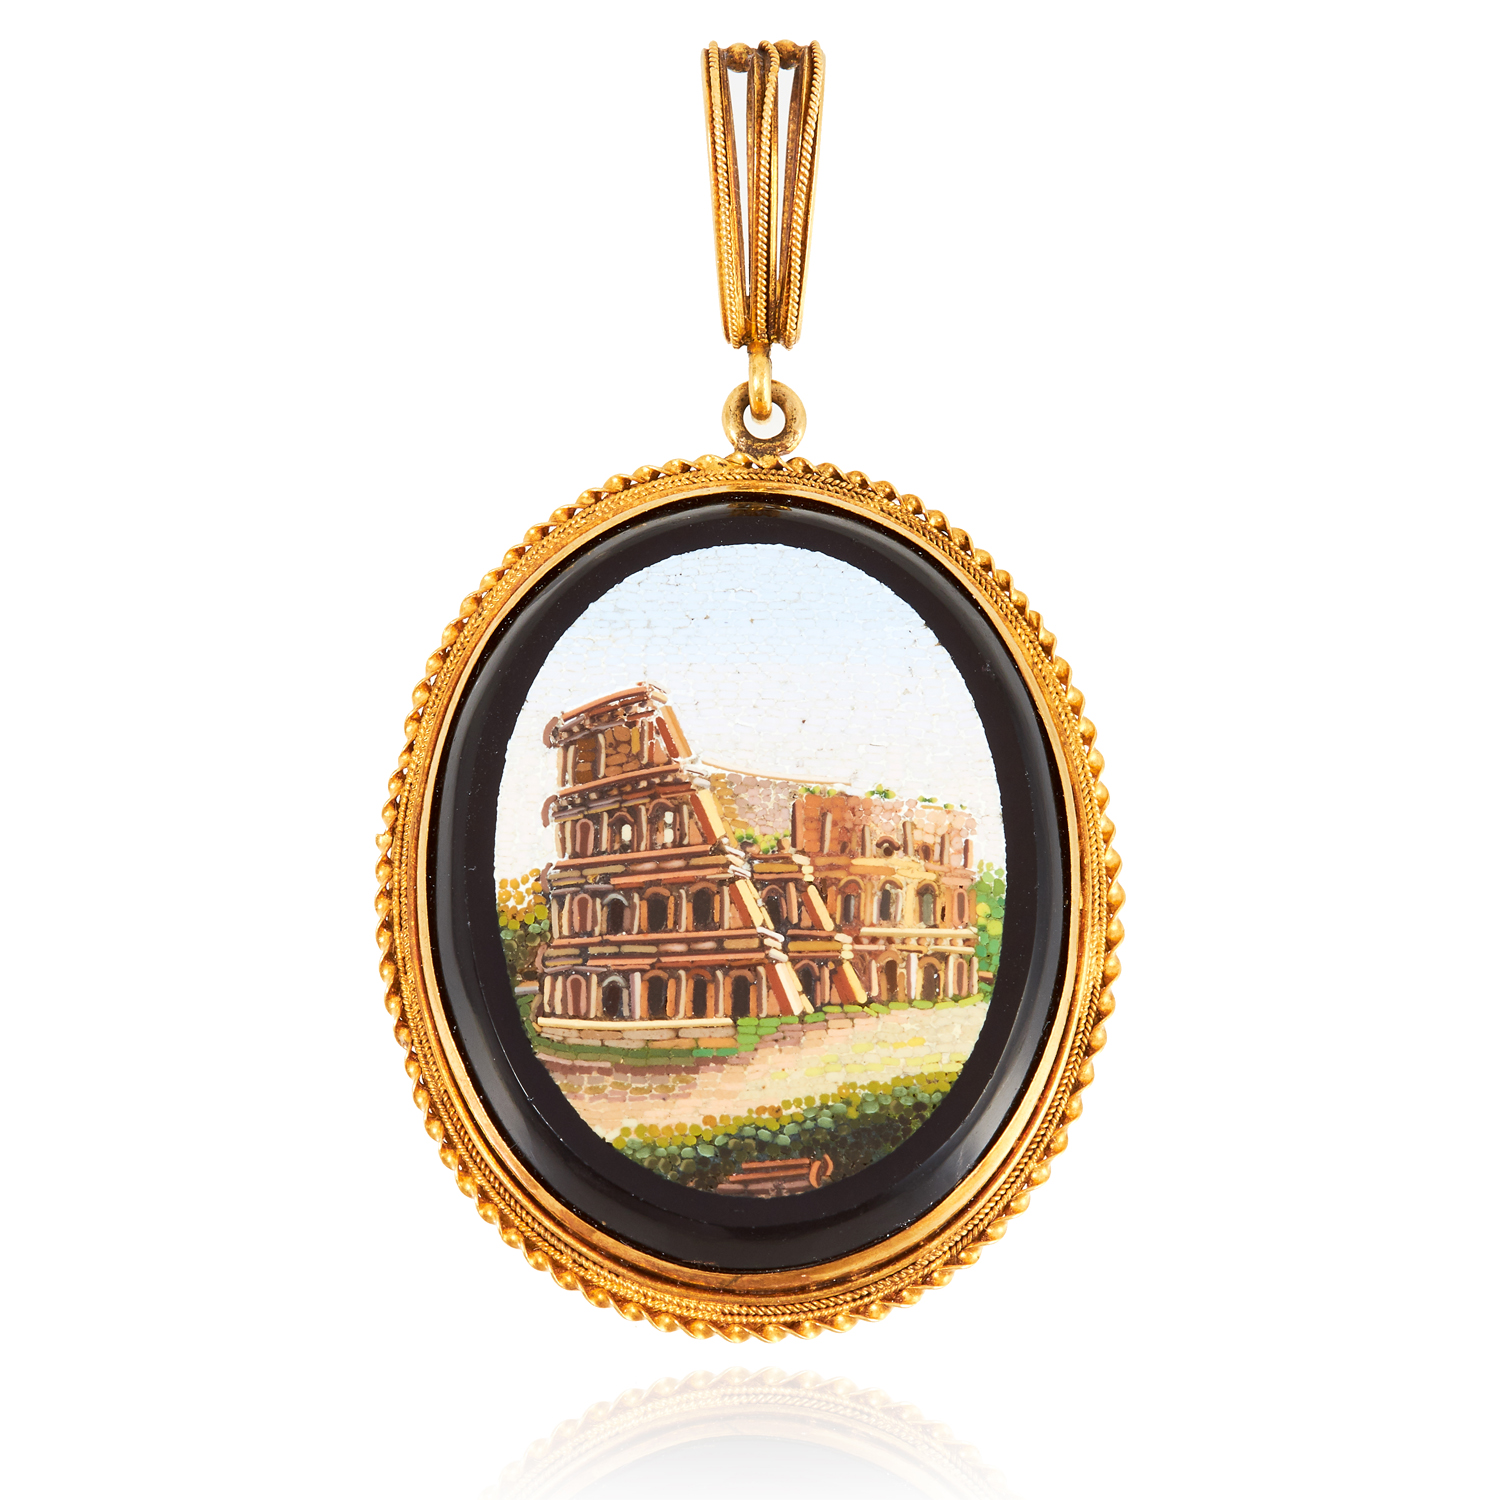 AN ANTIQUE MICROMOSAIC PENDANT, 19TH CENTURY in high carat yellow gold, the oval micromosaic set